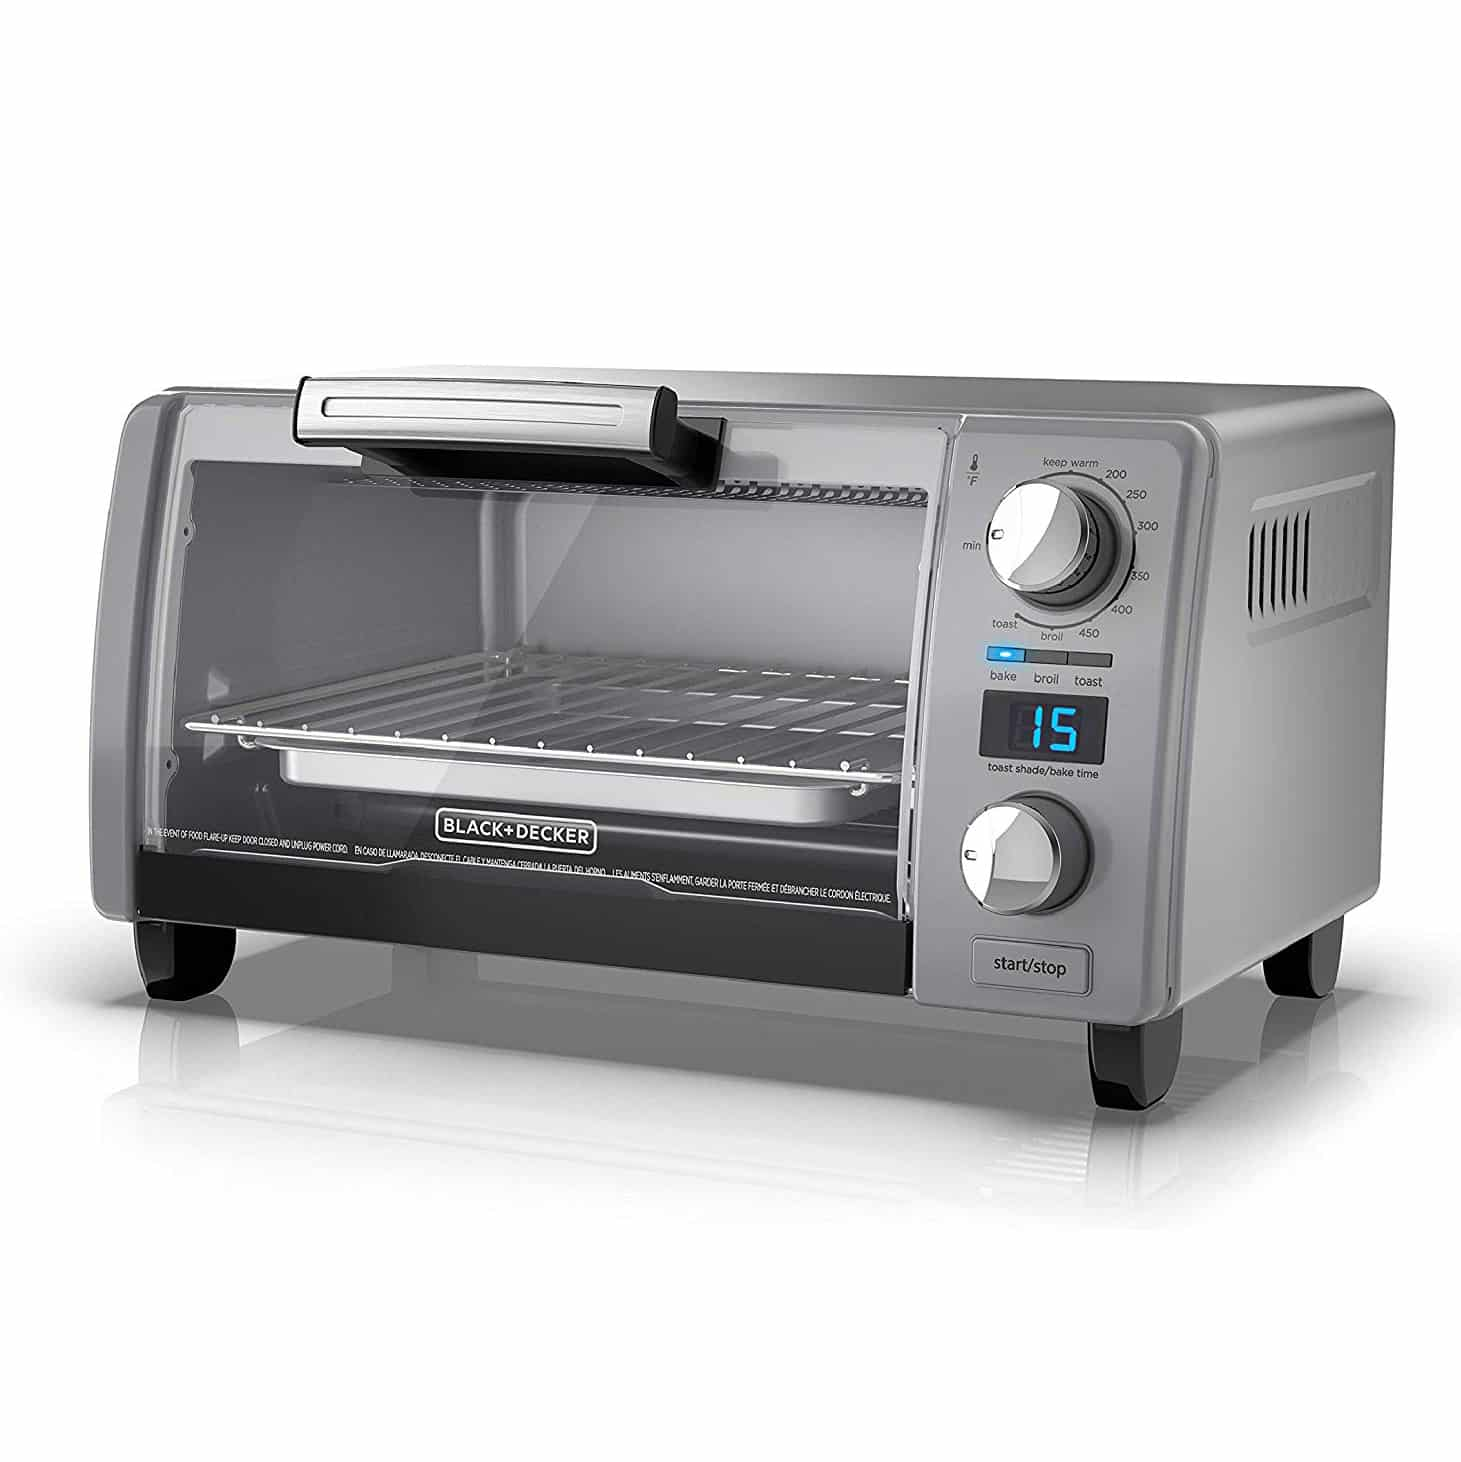 BLACK+DECKER Digital Toaster